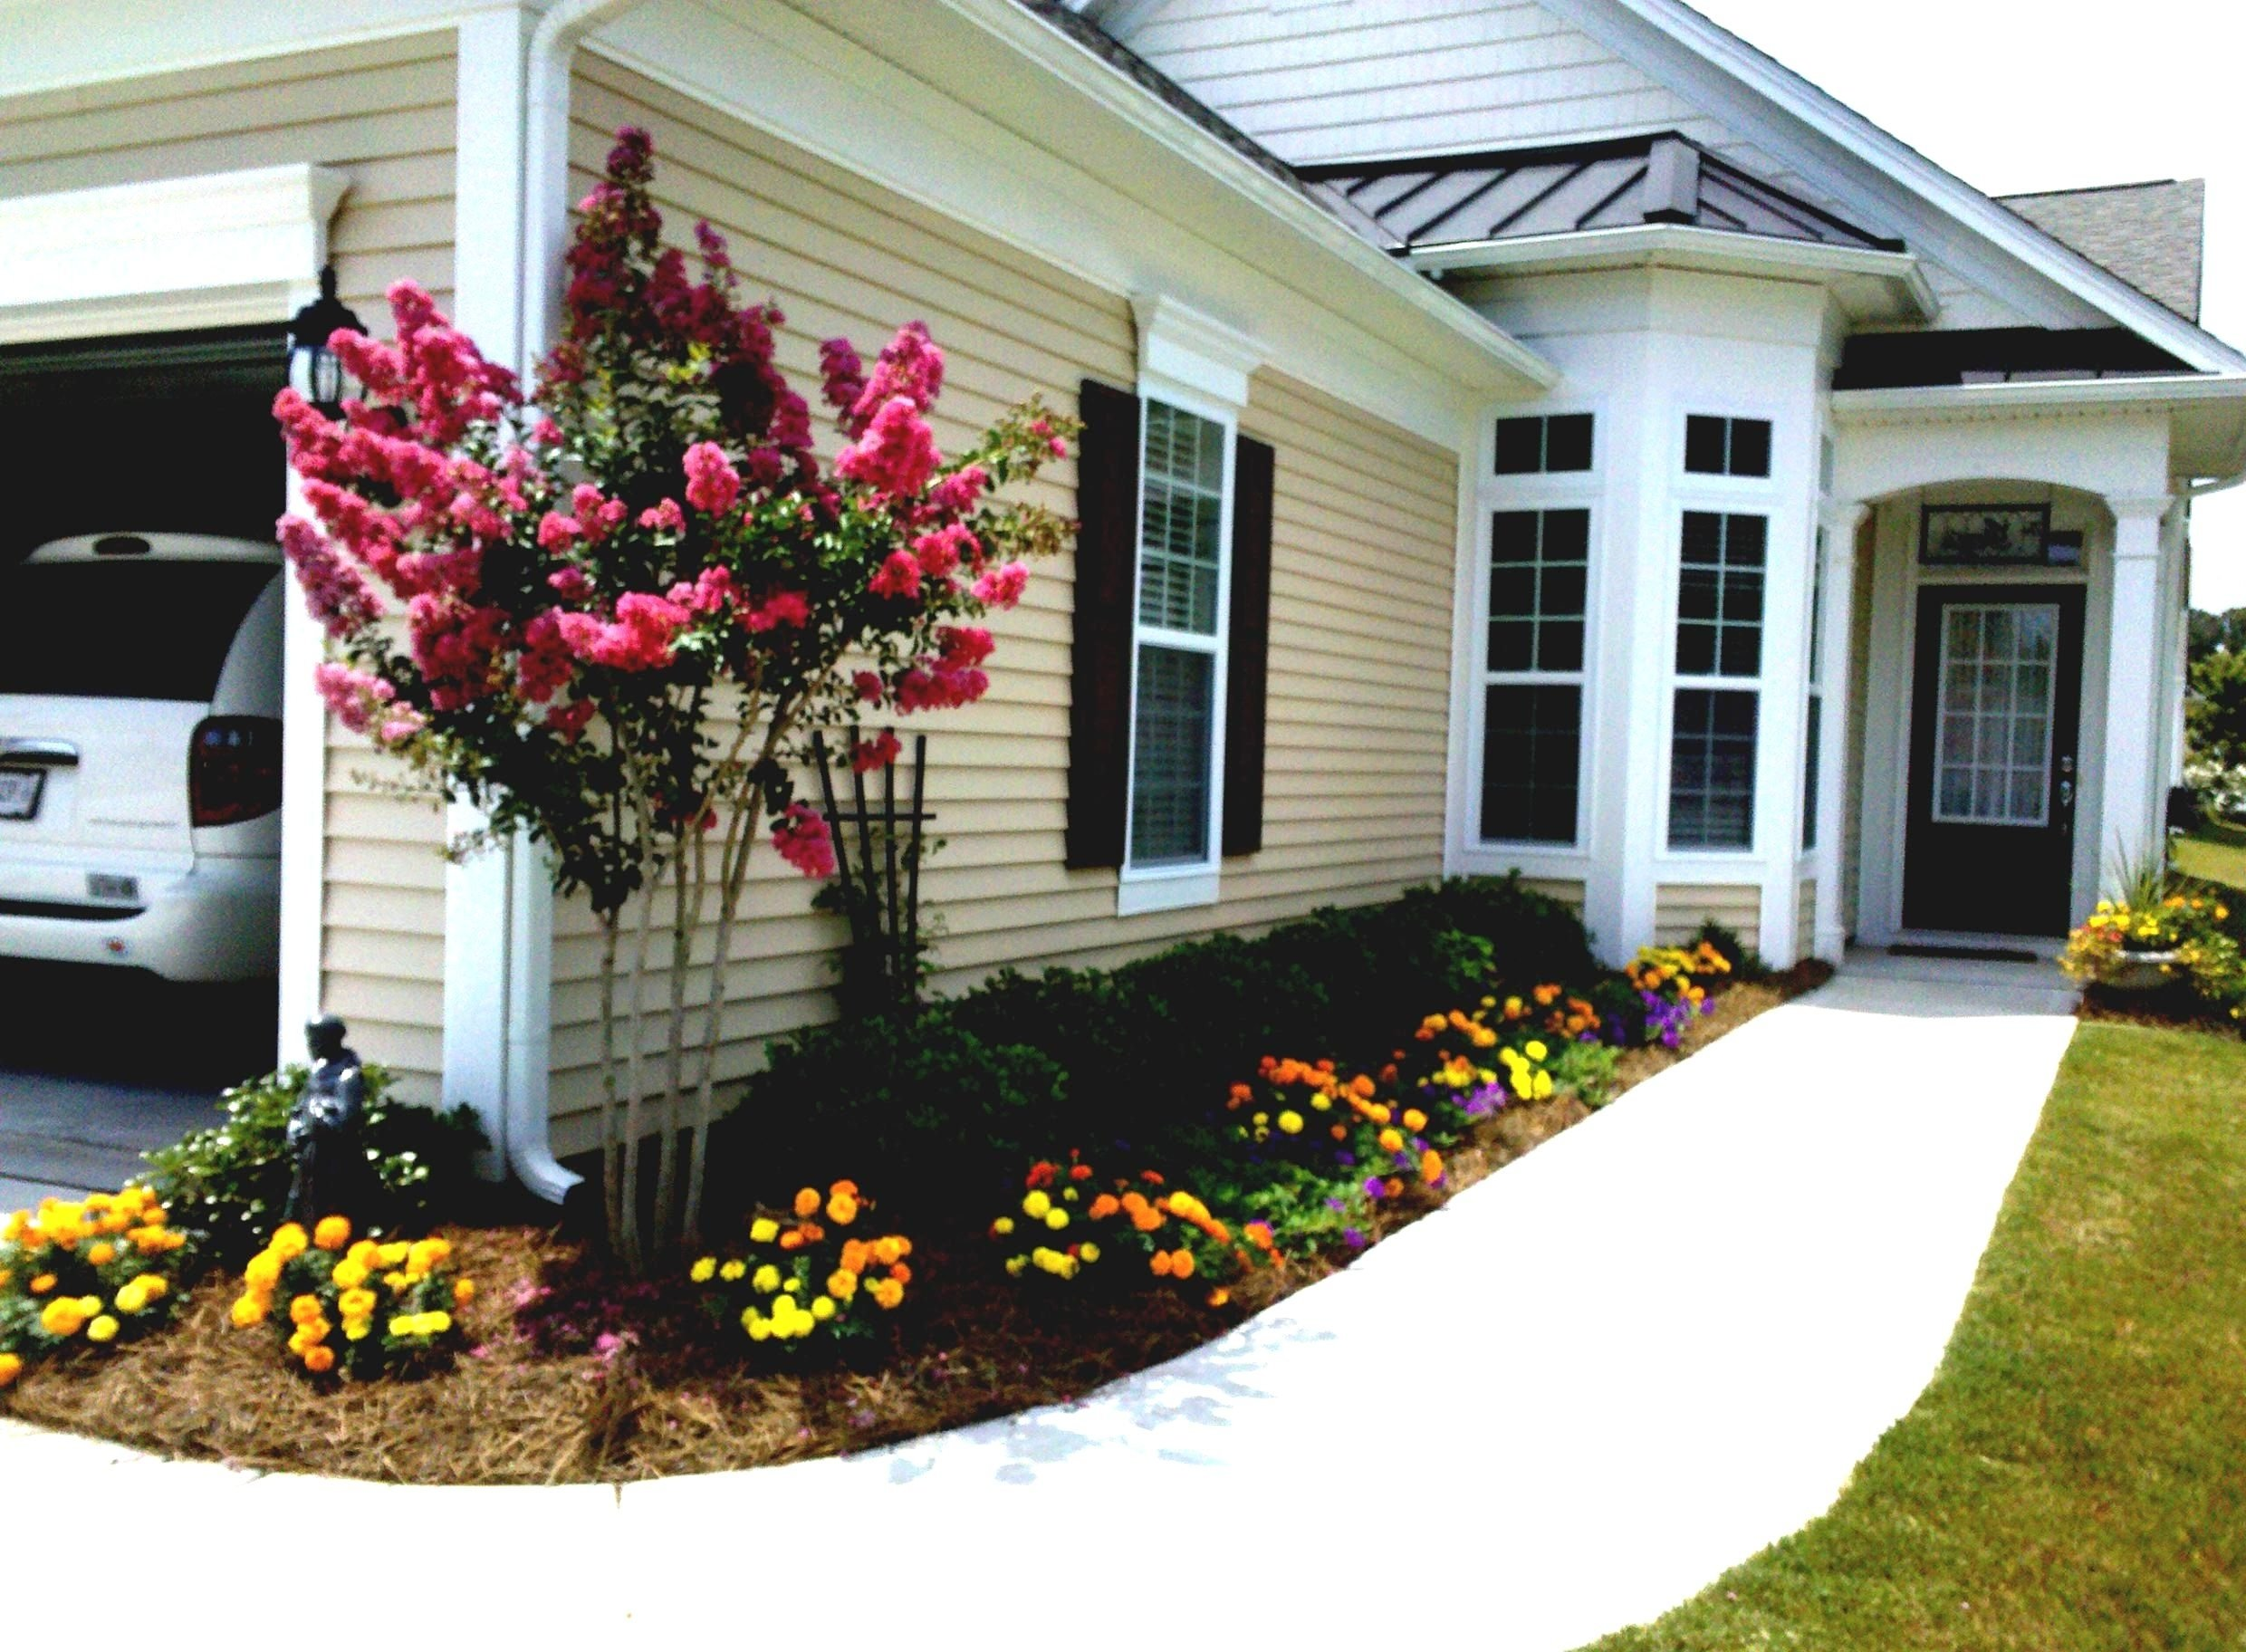 10 Stylish Simple Front Yard Landscaping Ideas On A Budget simple front yard landscaping on a budget the garden inspirations